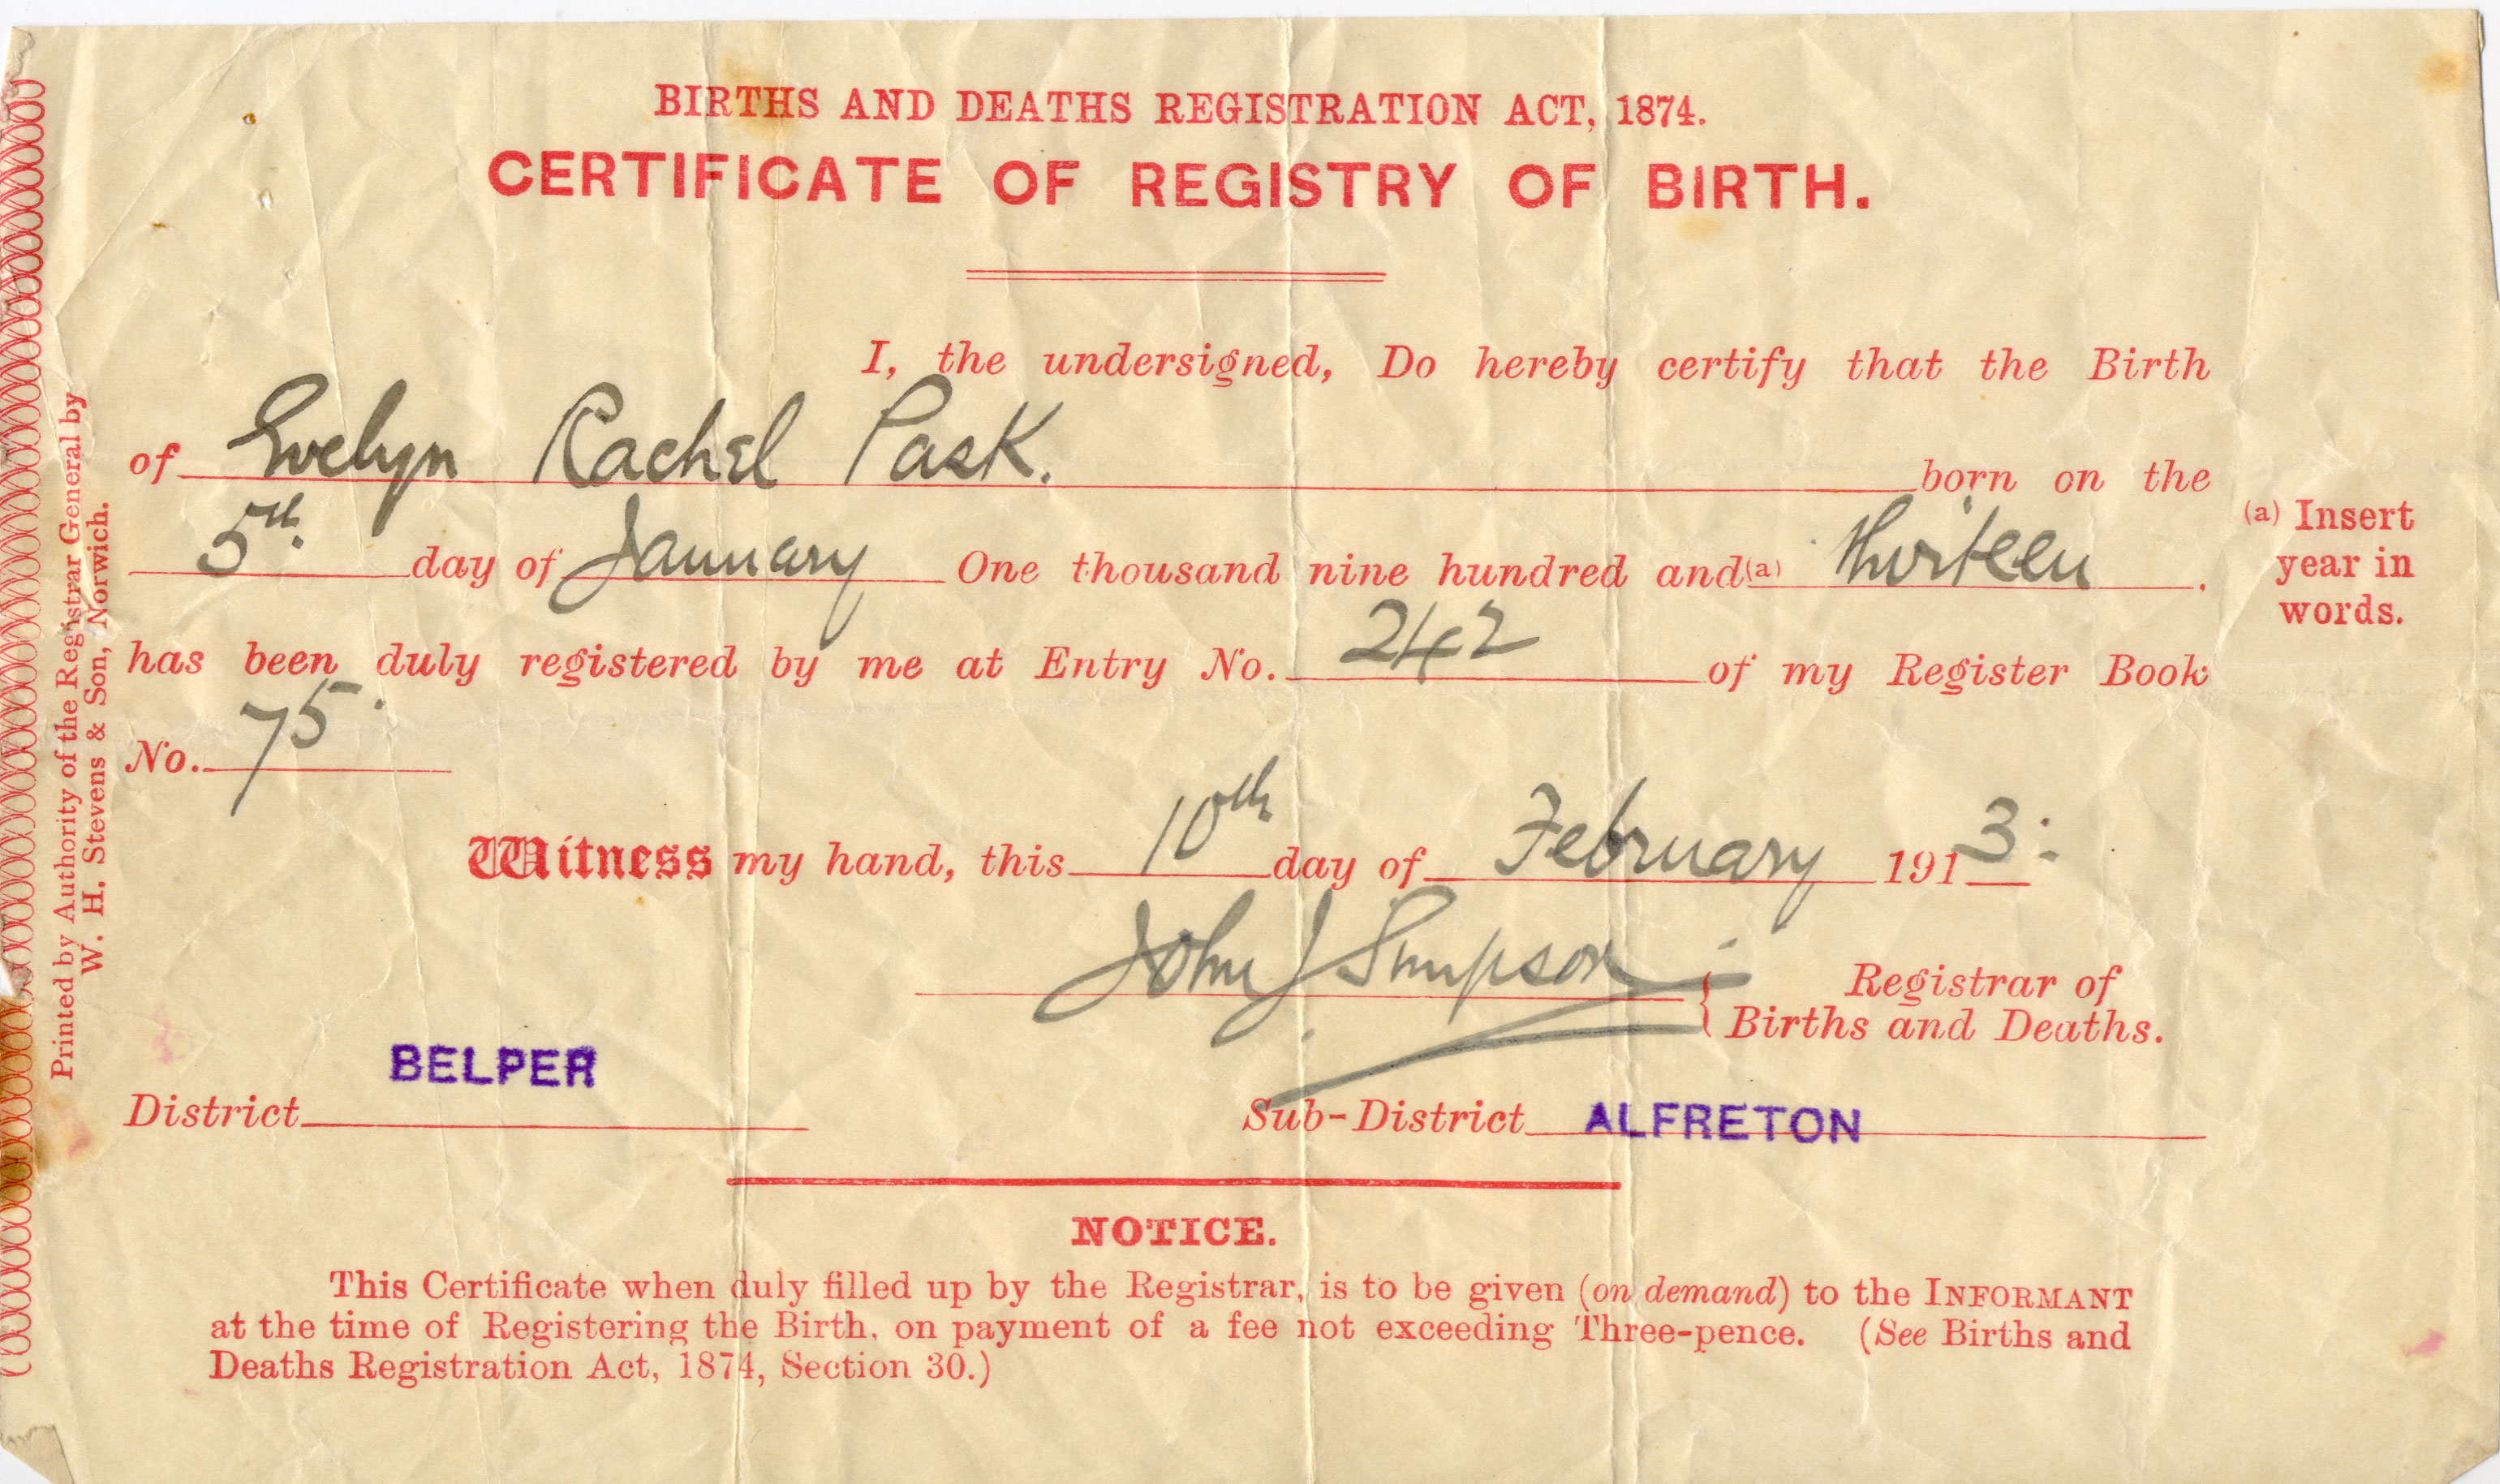 Pask paske one name study narratives source page s204 copy of the short version of the birth certificate of evelyn rachel pask born 5 january 1913 registered in the registration district of belper aiddatafo Image collections